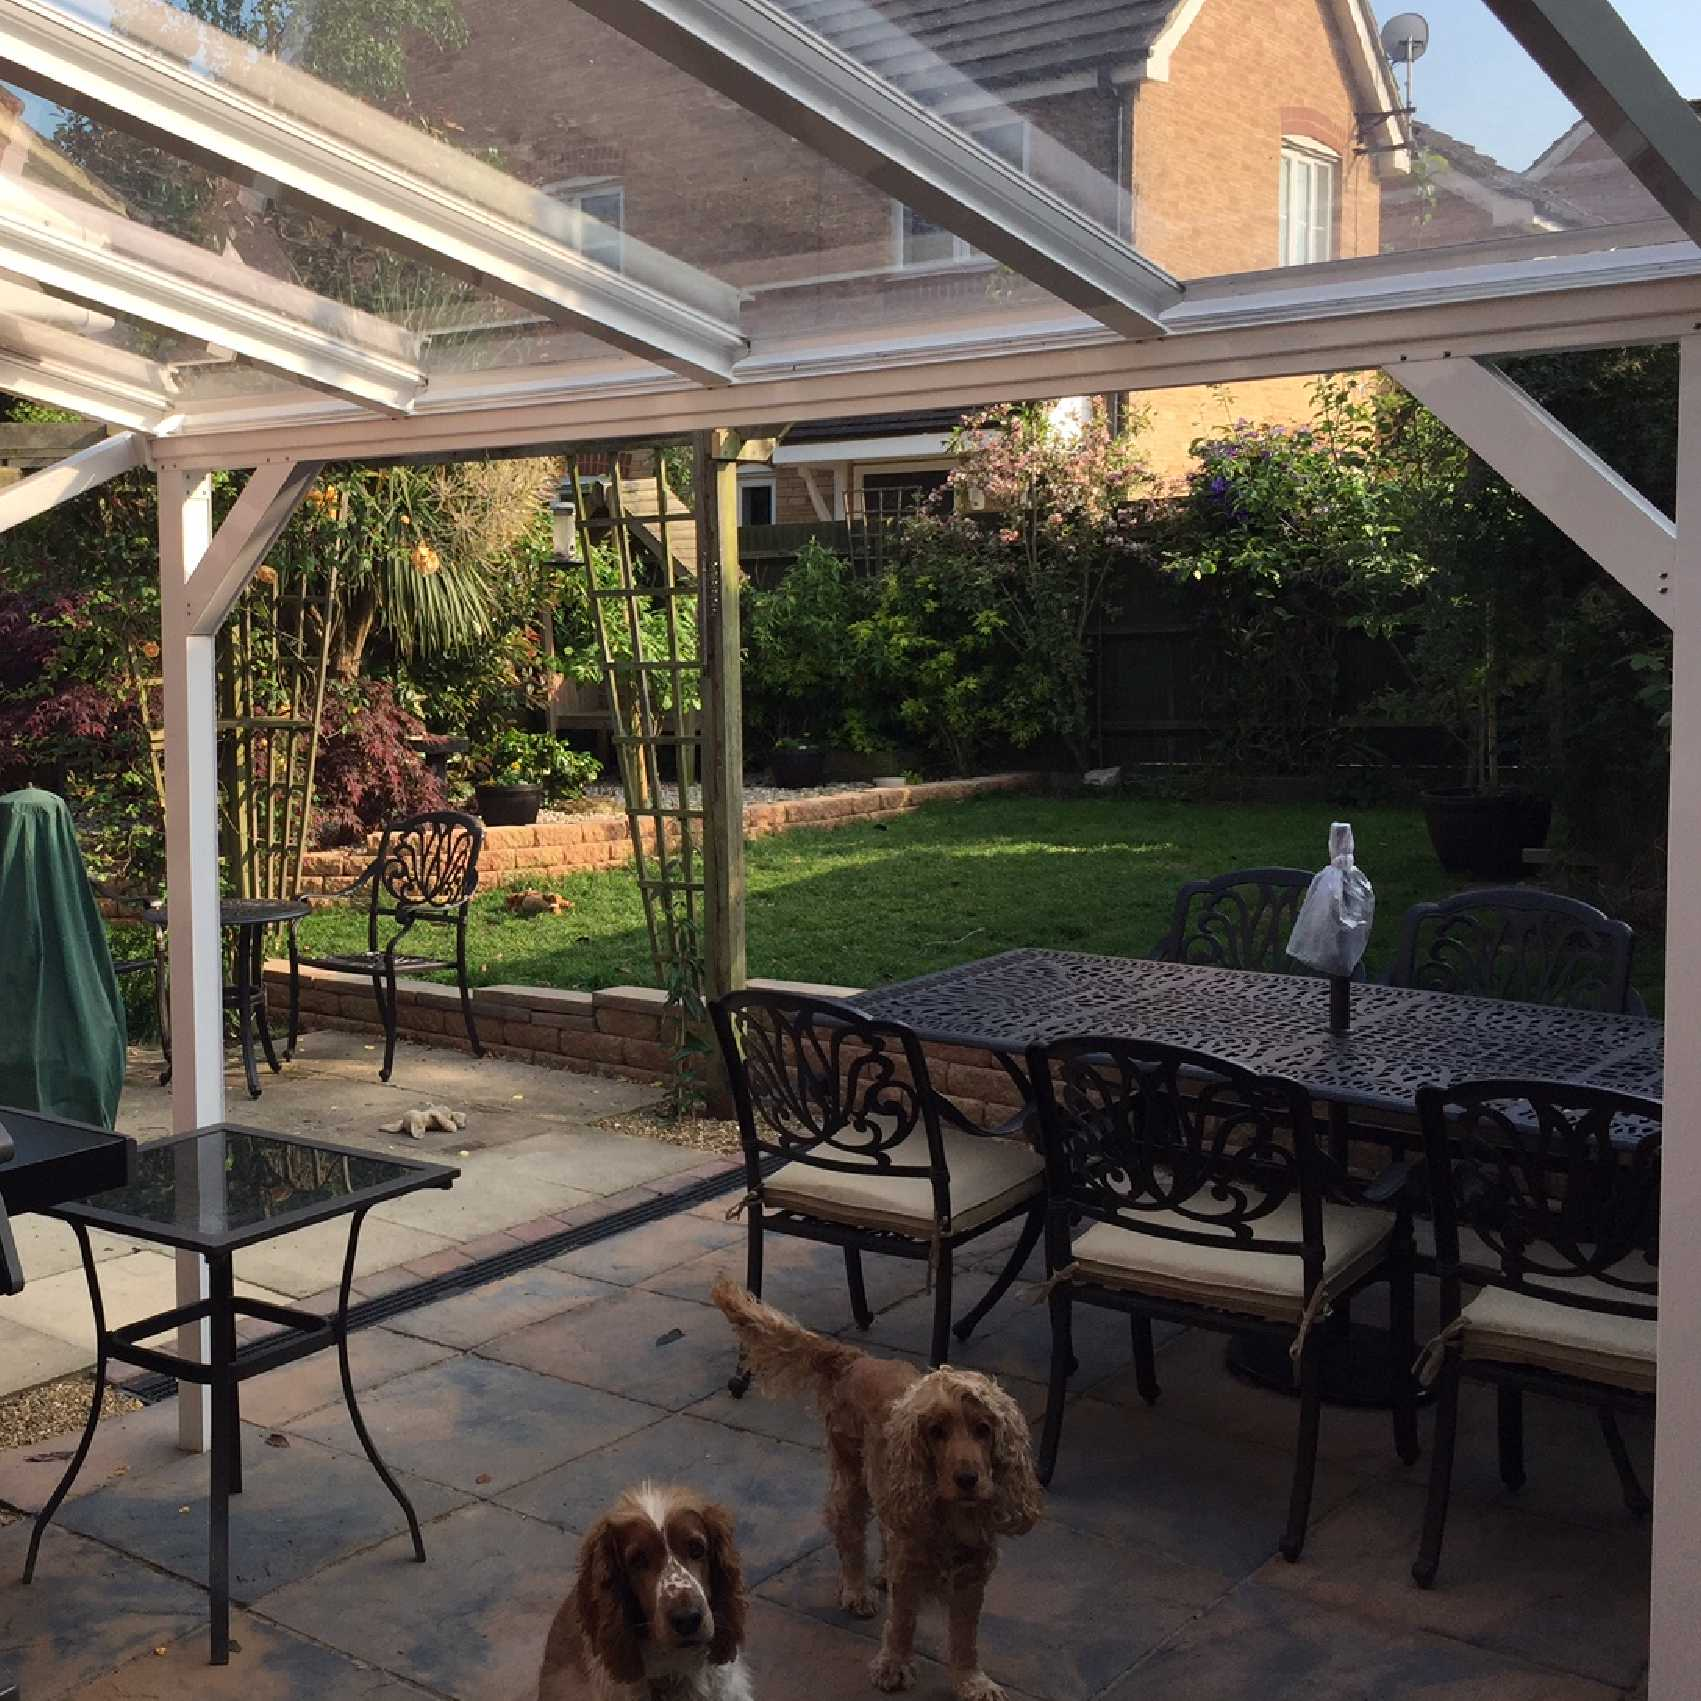 Affordable Omega Smart Lean-To Canopy with 6mm Glass Clear Plate Polycarbonate Glazing - 8.4m (W) x 4.0m (P), (4) Supporting Posts